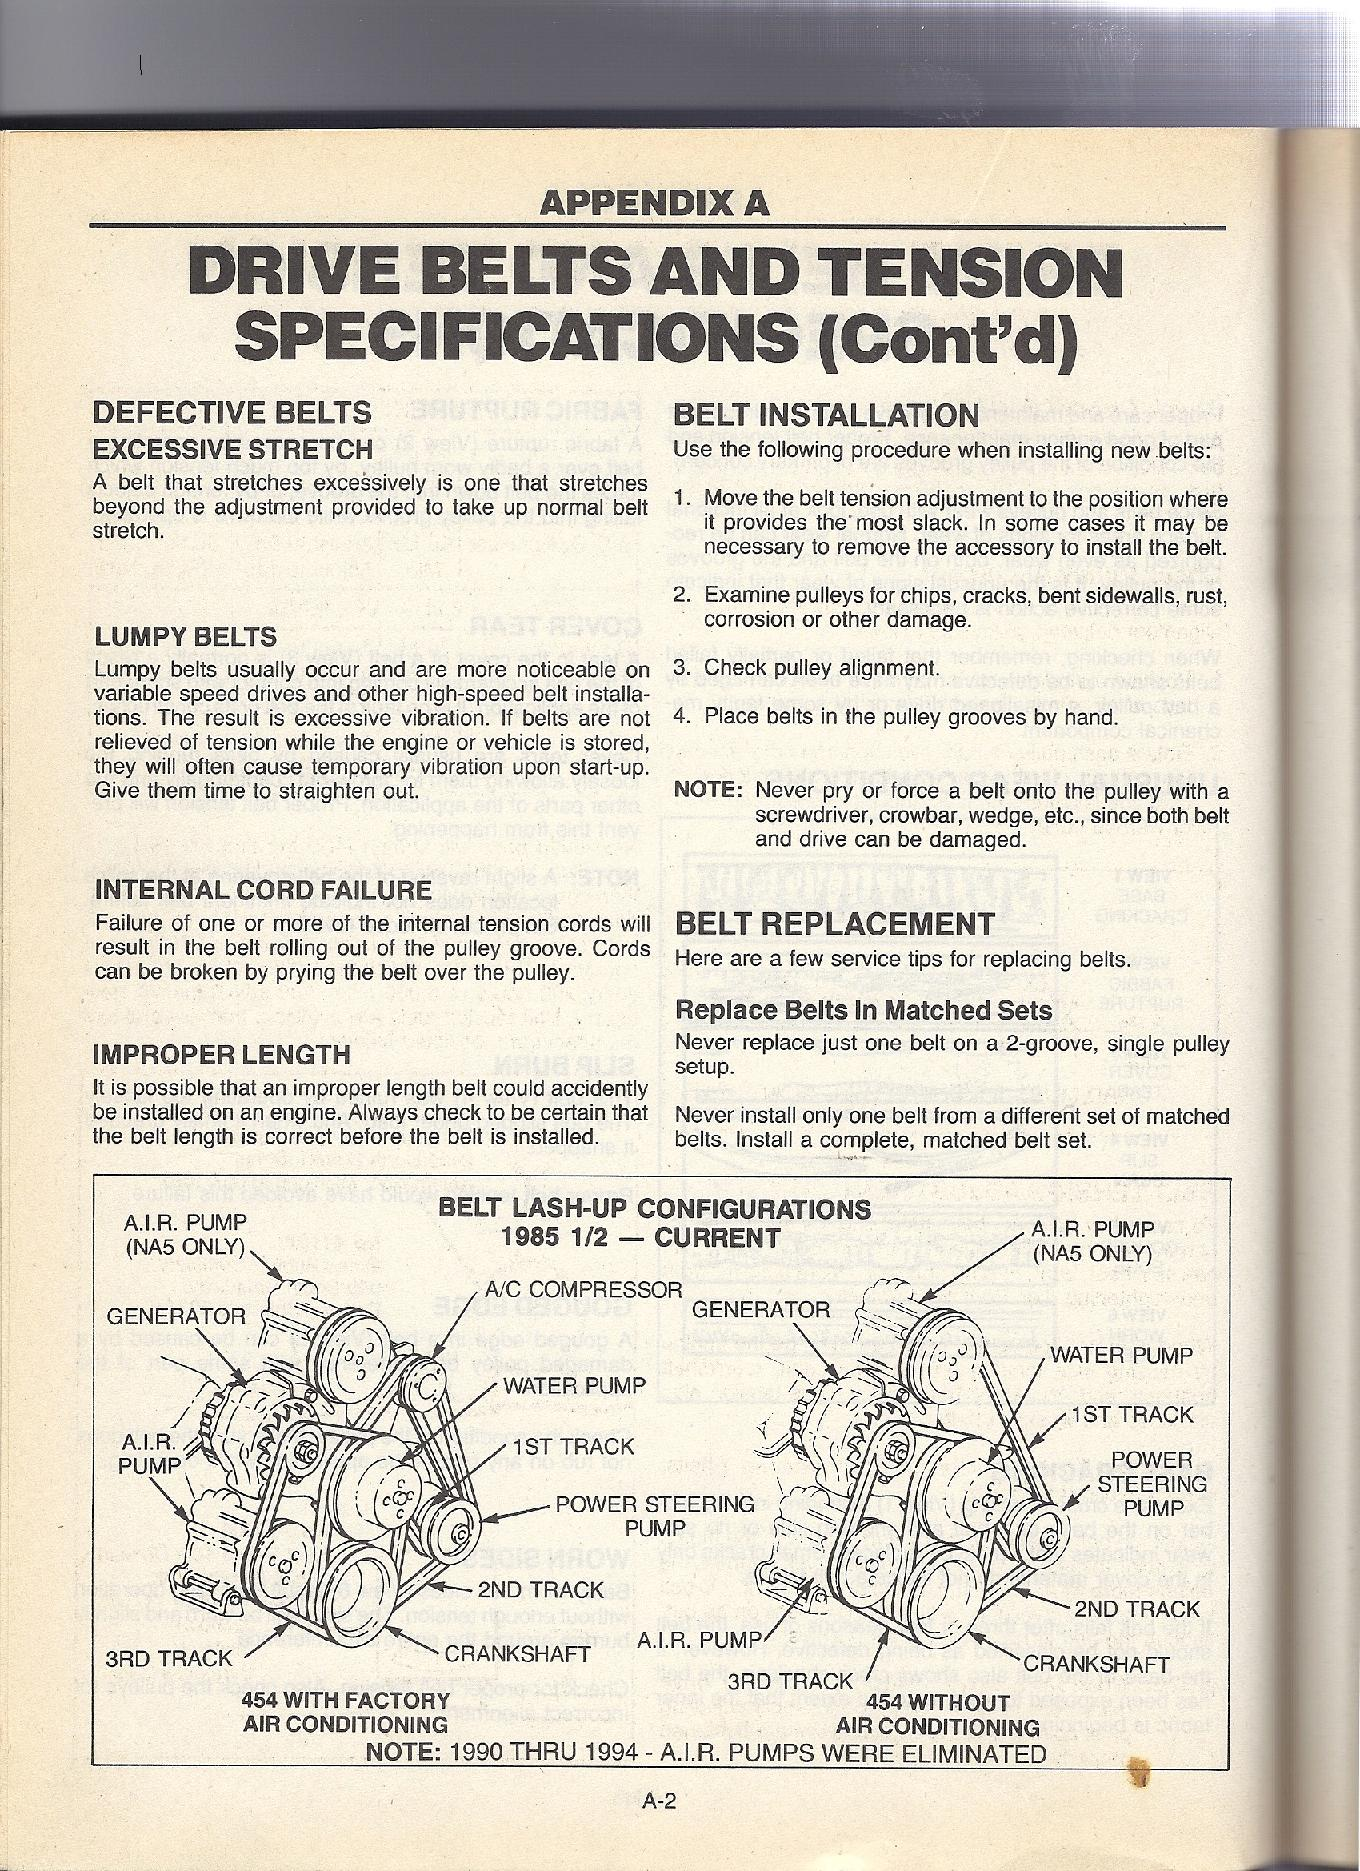 I Need A Belt Diagram For A 1984 Fleetwood Pace Arrow Manual Guide